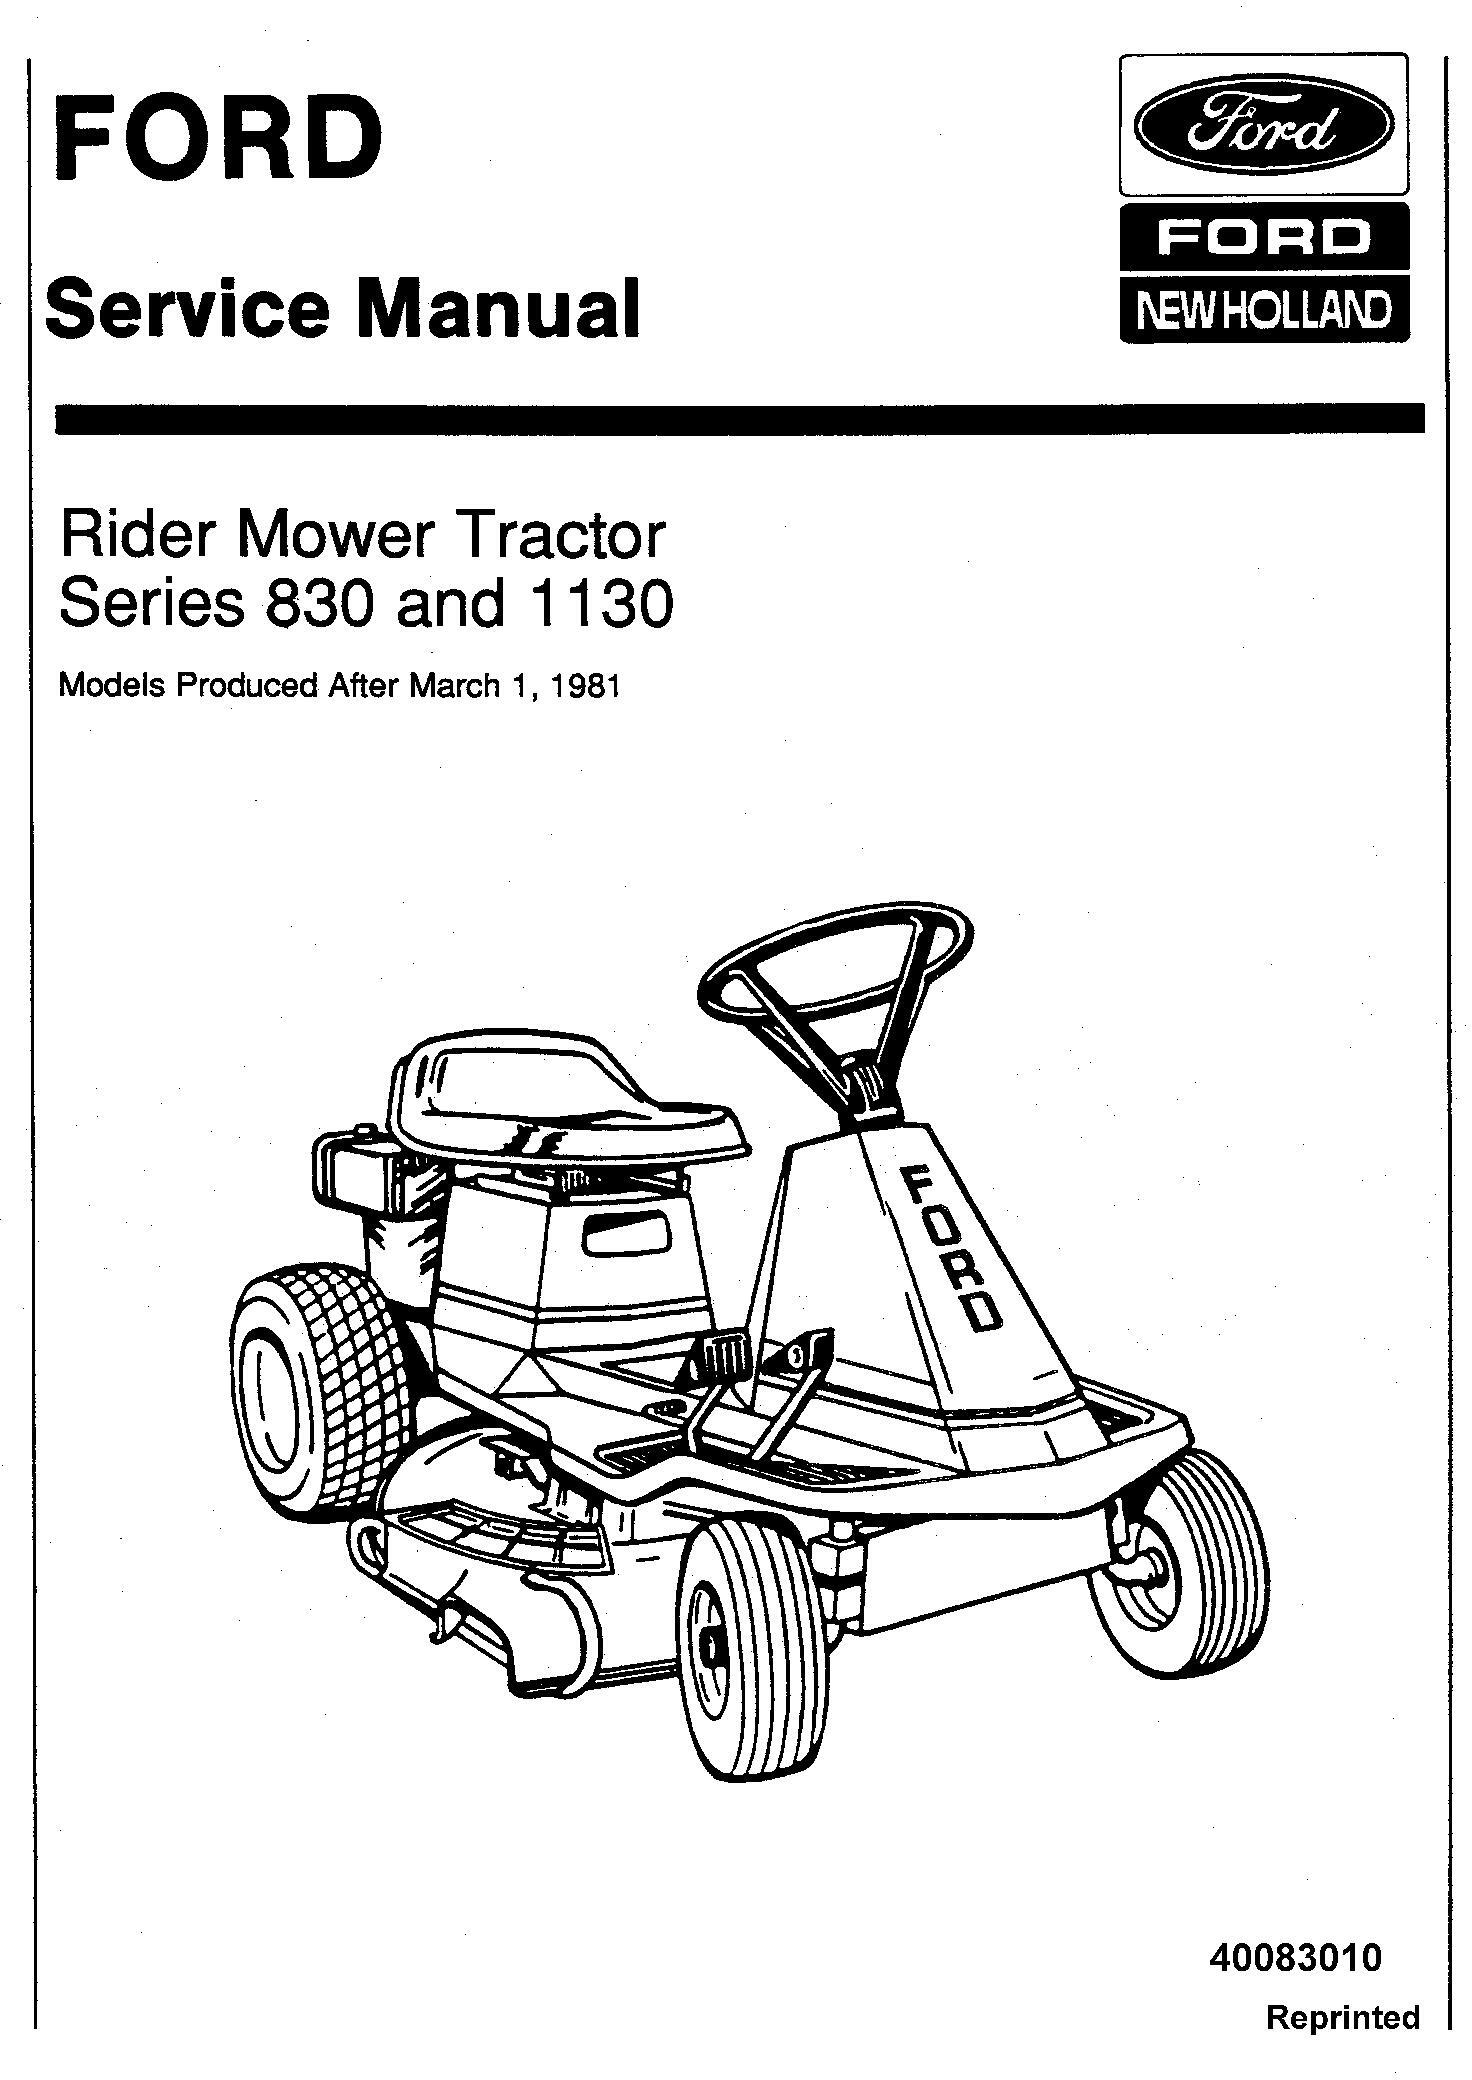 Ford 830 Amp Rider Mower Tractor Service Manual Se